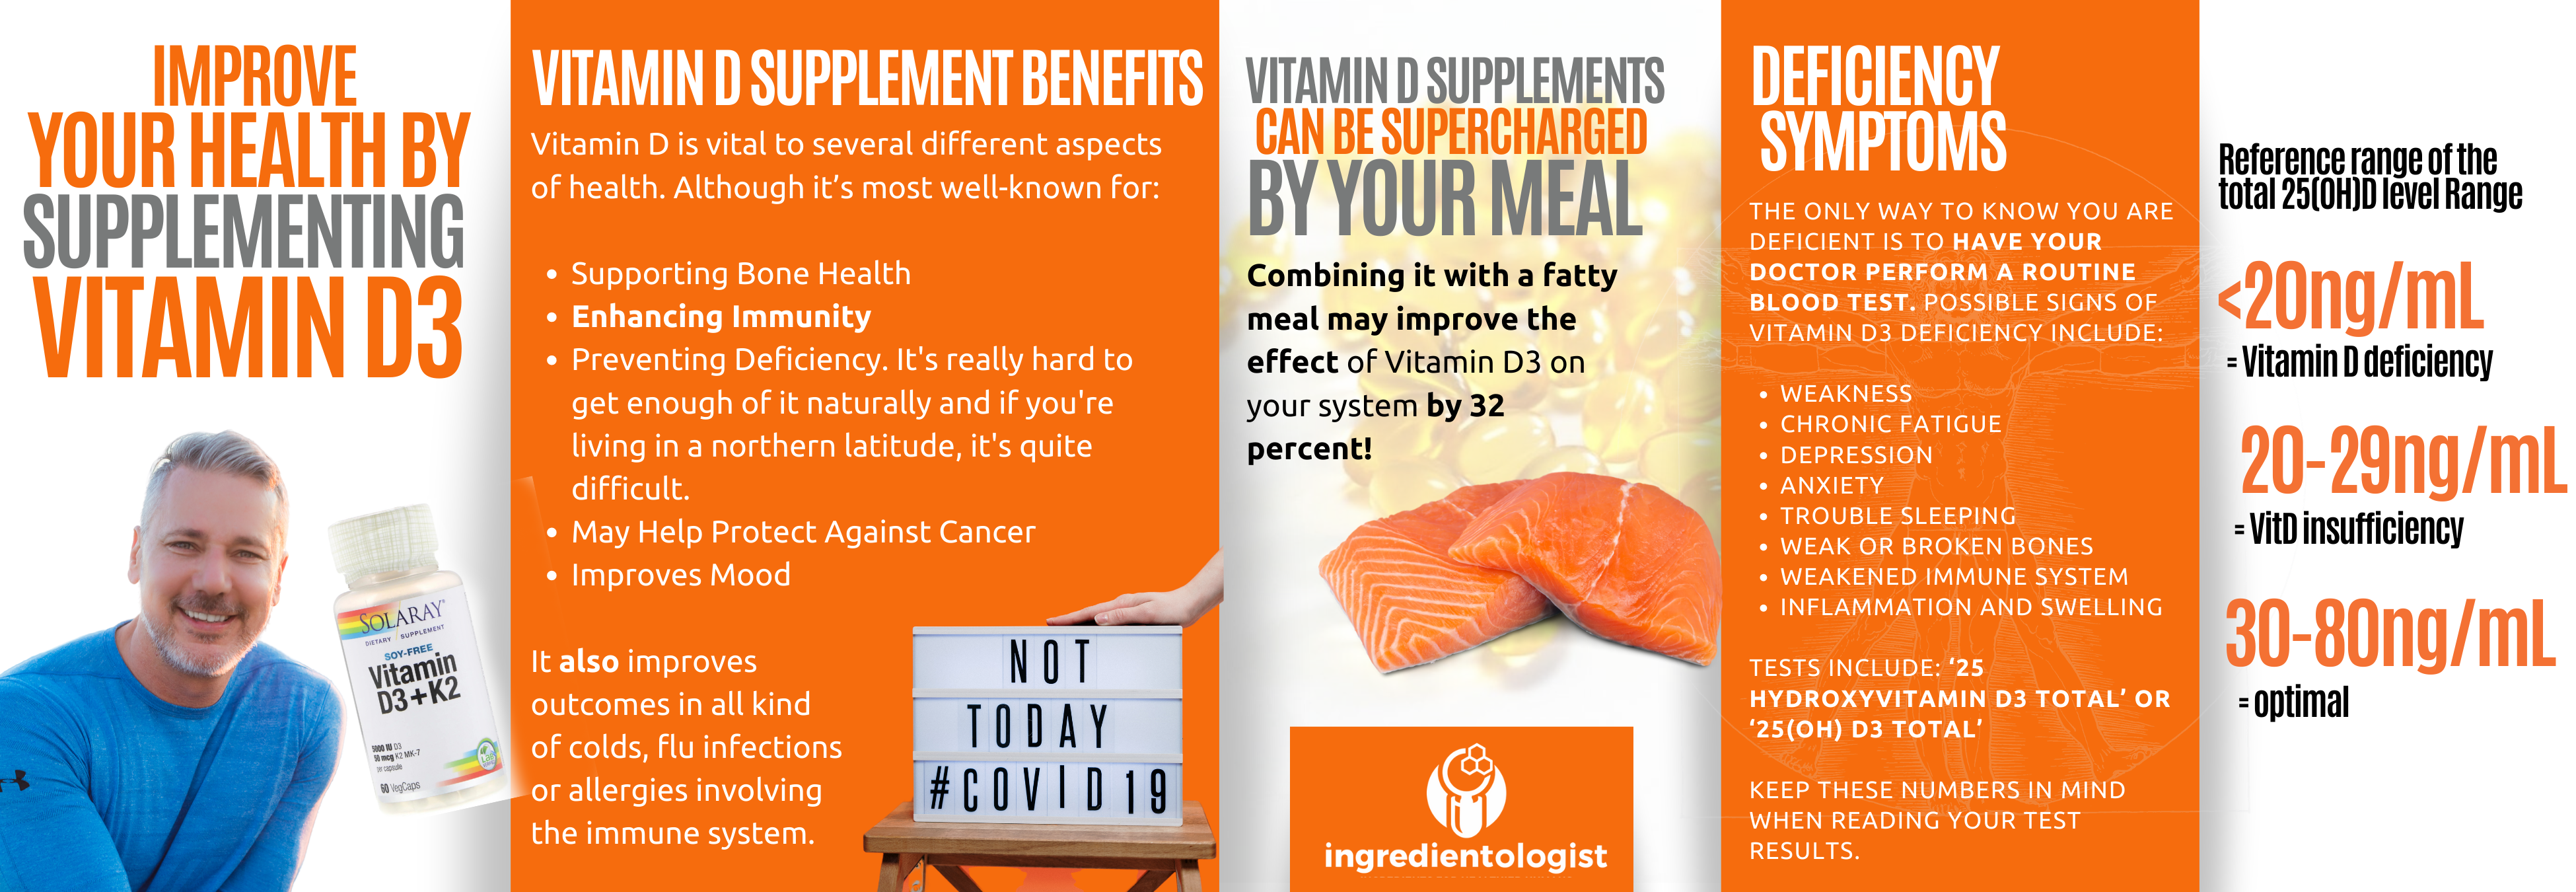 Improve your health by supplementing VITAMIN D3